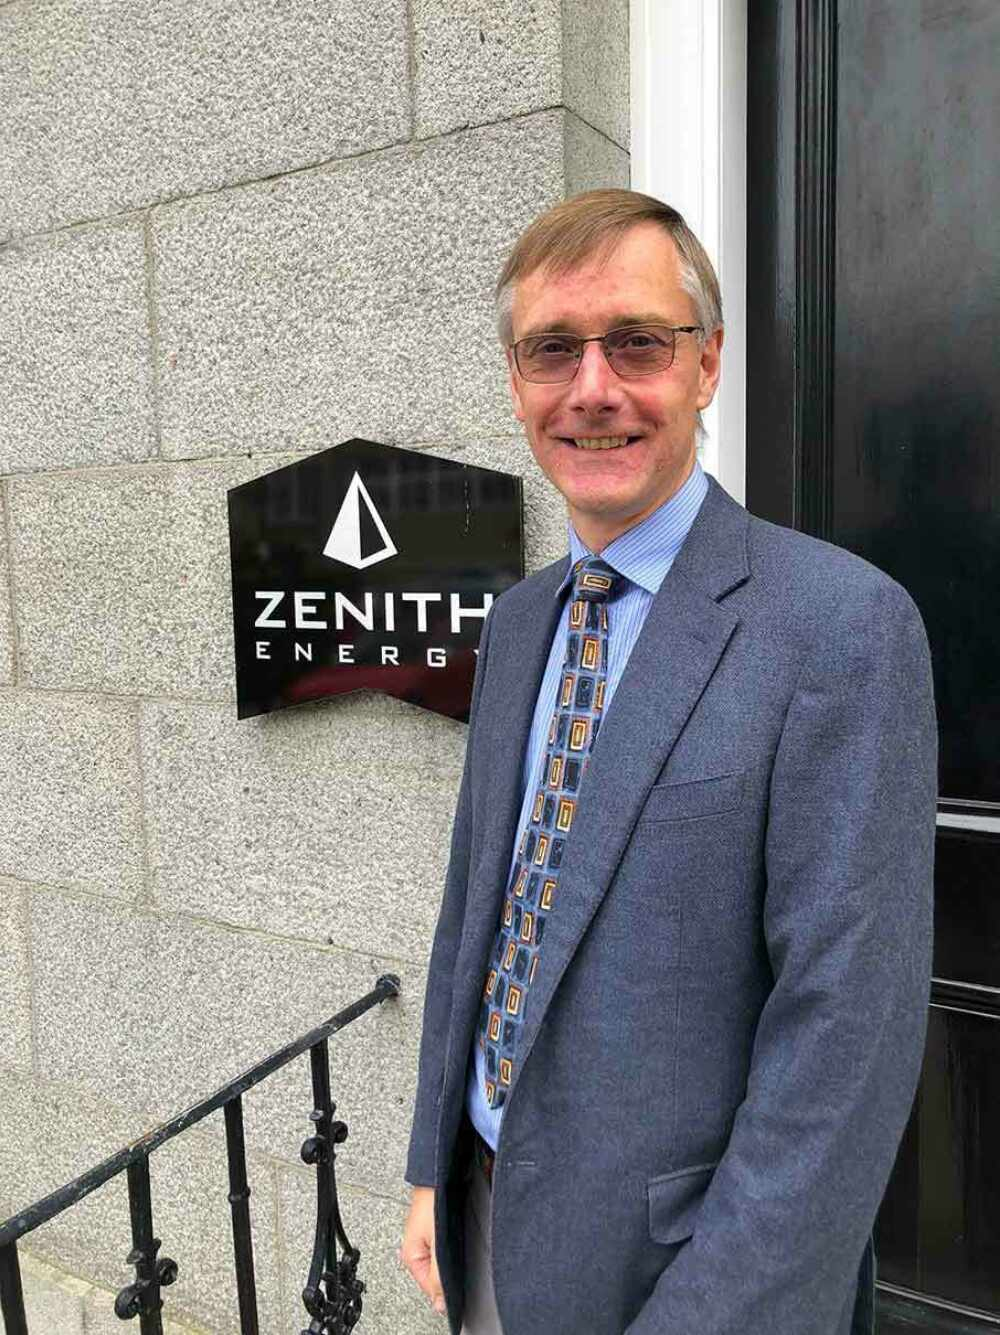 Zenith bolster management and wells team